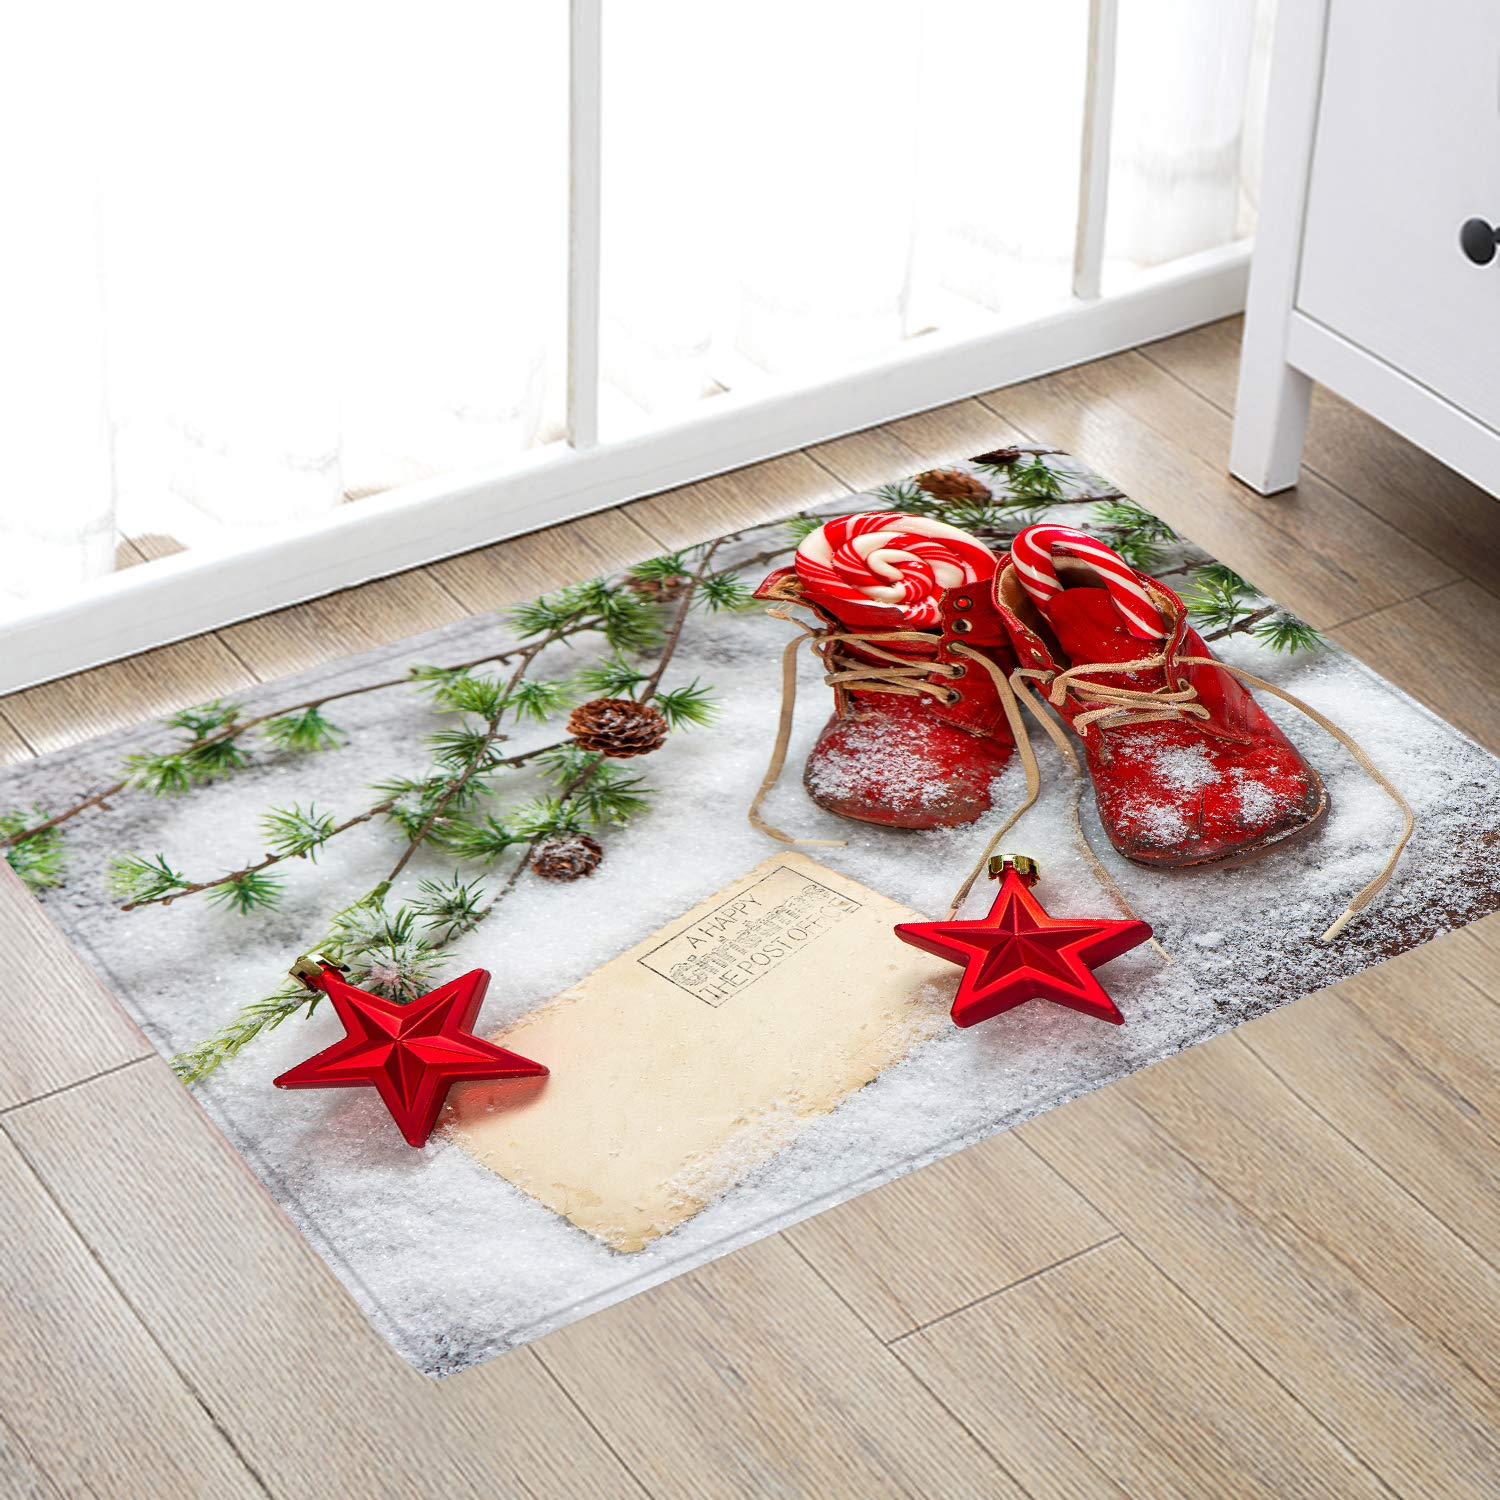 Snow Red Christmas Shoes Print Memory Foam Comfort mat Non Slip Super Soft Coral Fleece rug Doormats Carpet for Kitchen Dining and Living Room 24 x 16 inches